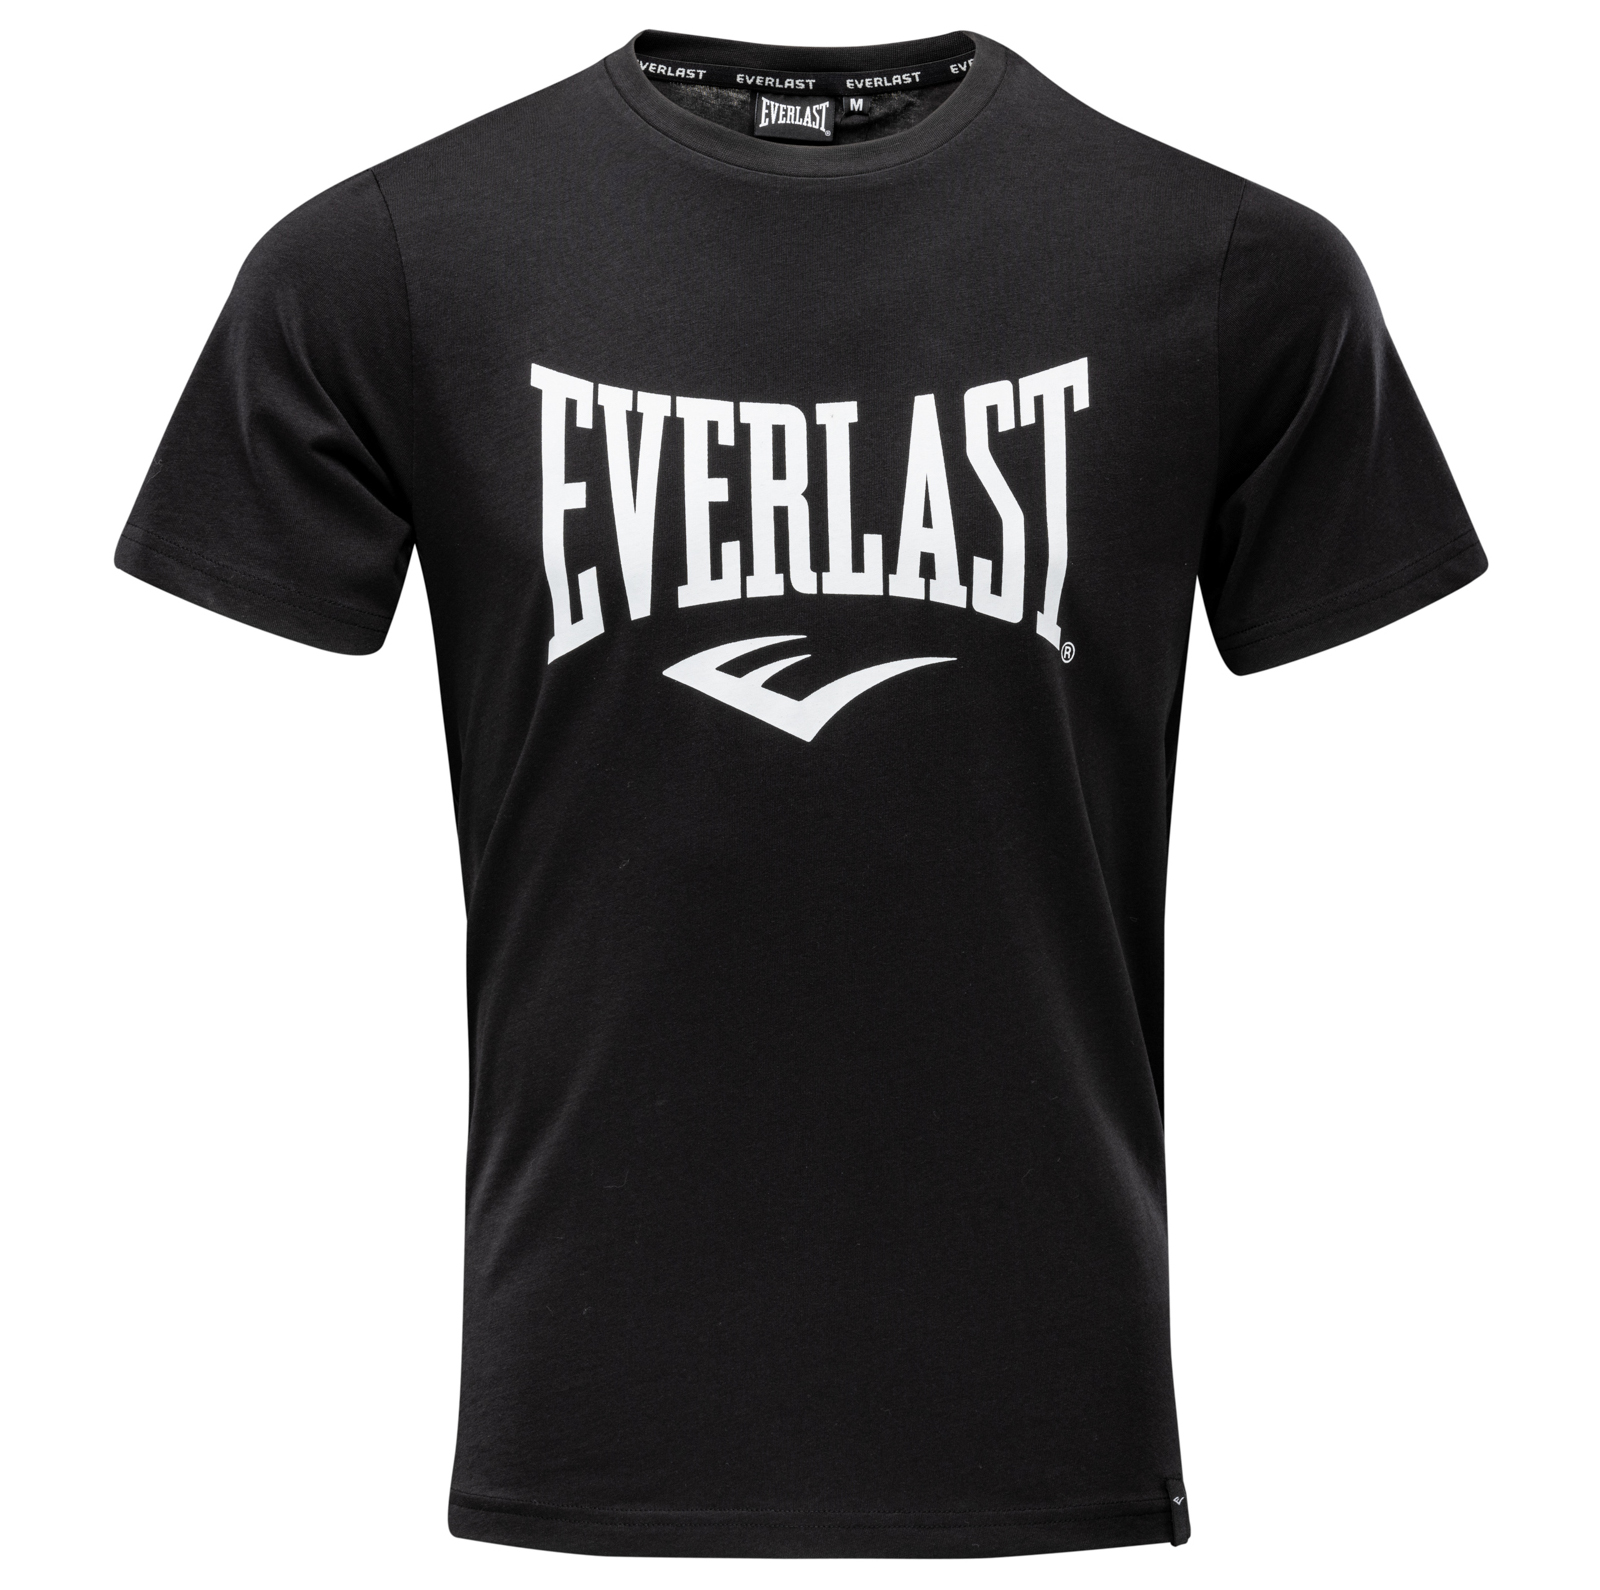 T-shirt Everlast Russel